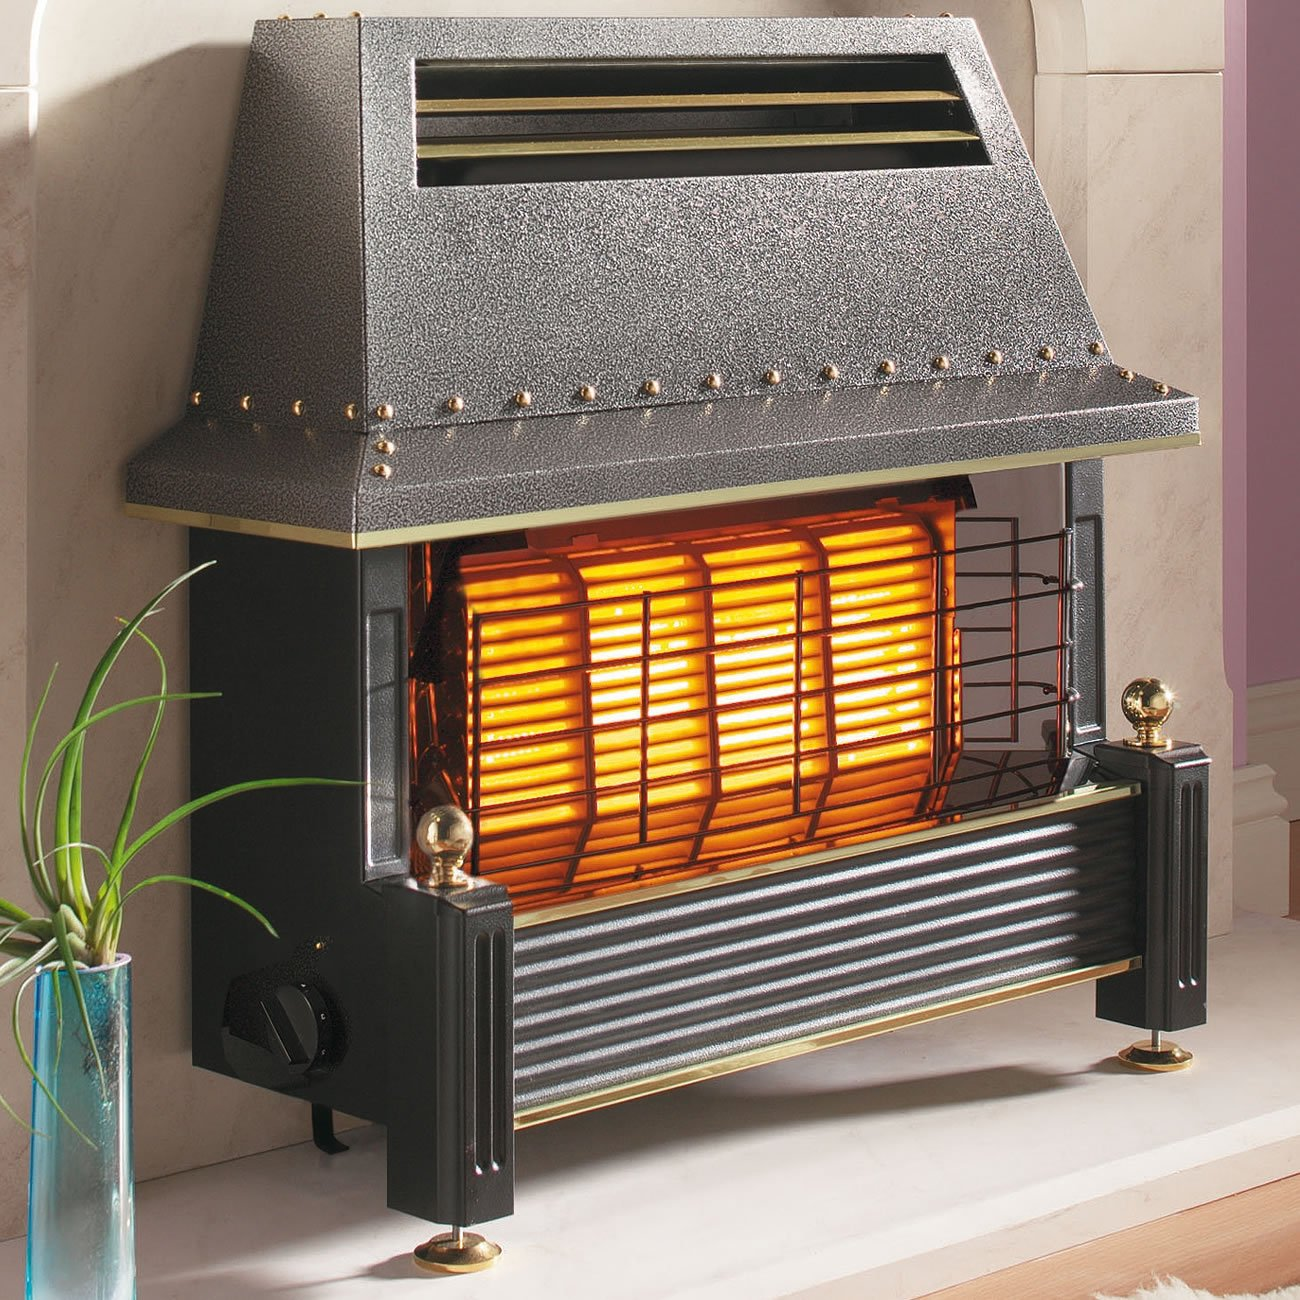 Outset Fireplace - Regency Style - Bronze: Amazon.co.uk: Kitchen & Home